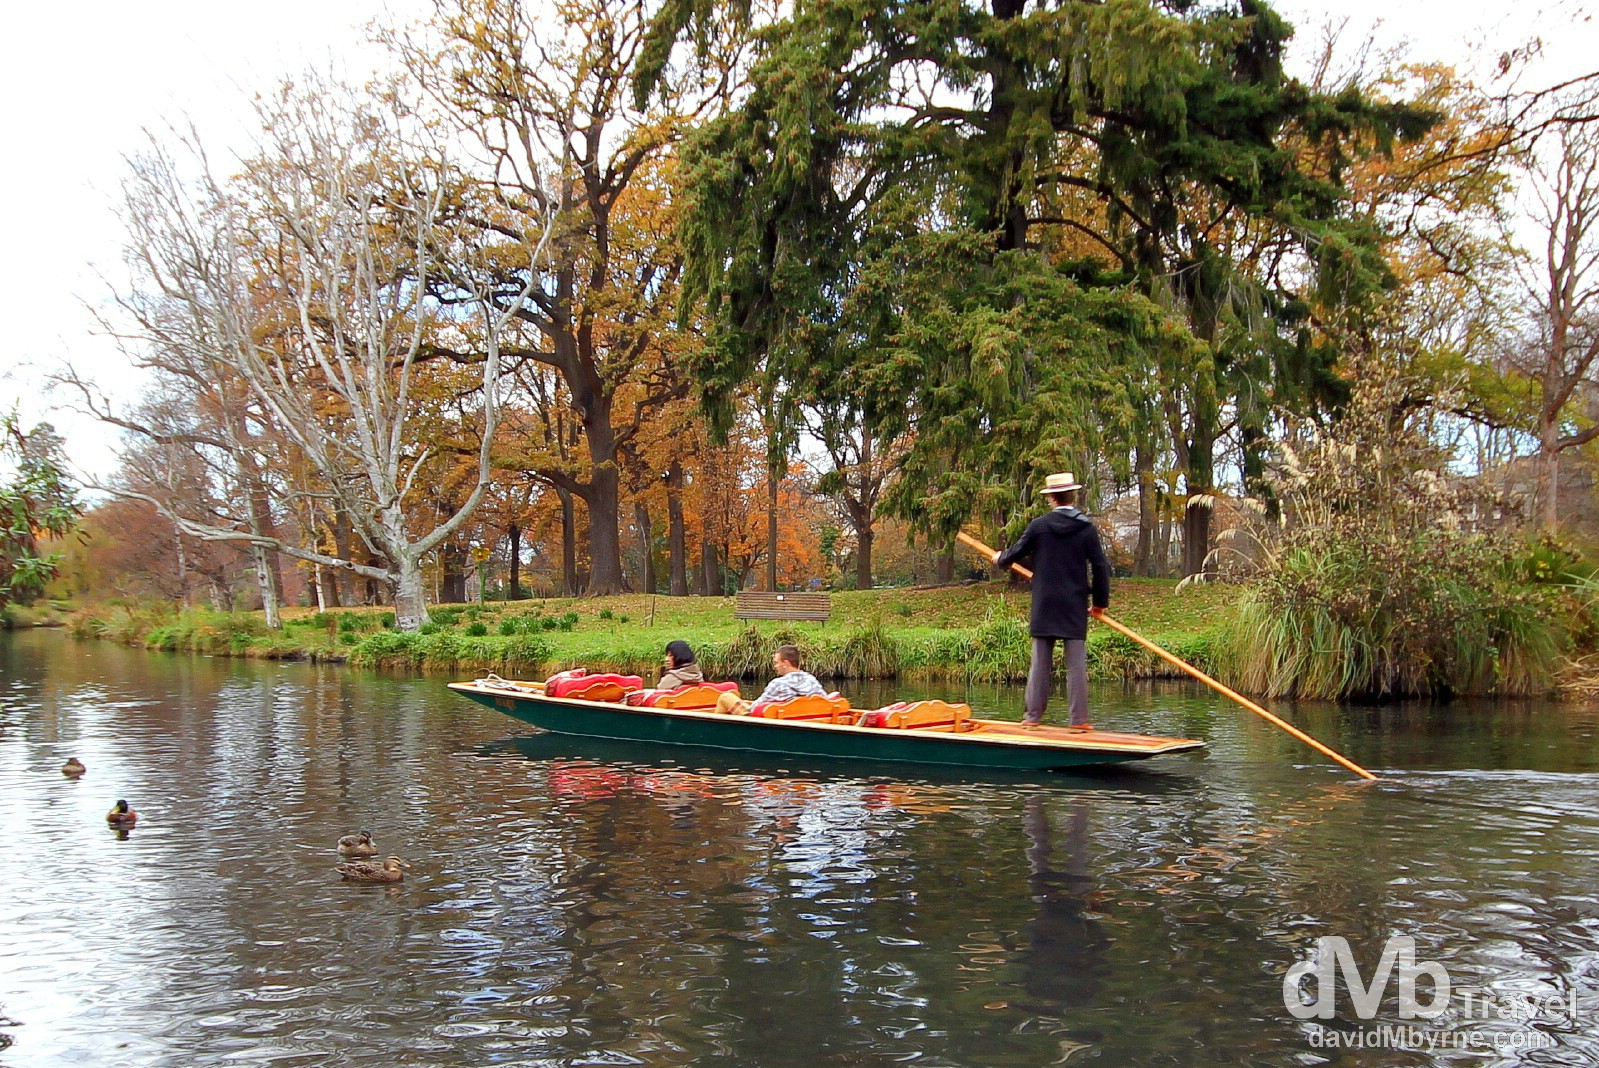 Punting on the Avon River in the Botanic Gardens, Christchurch, South Island, New Zealand. June 3rd 2012.